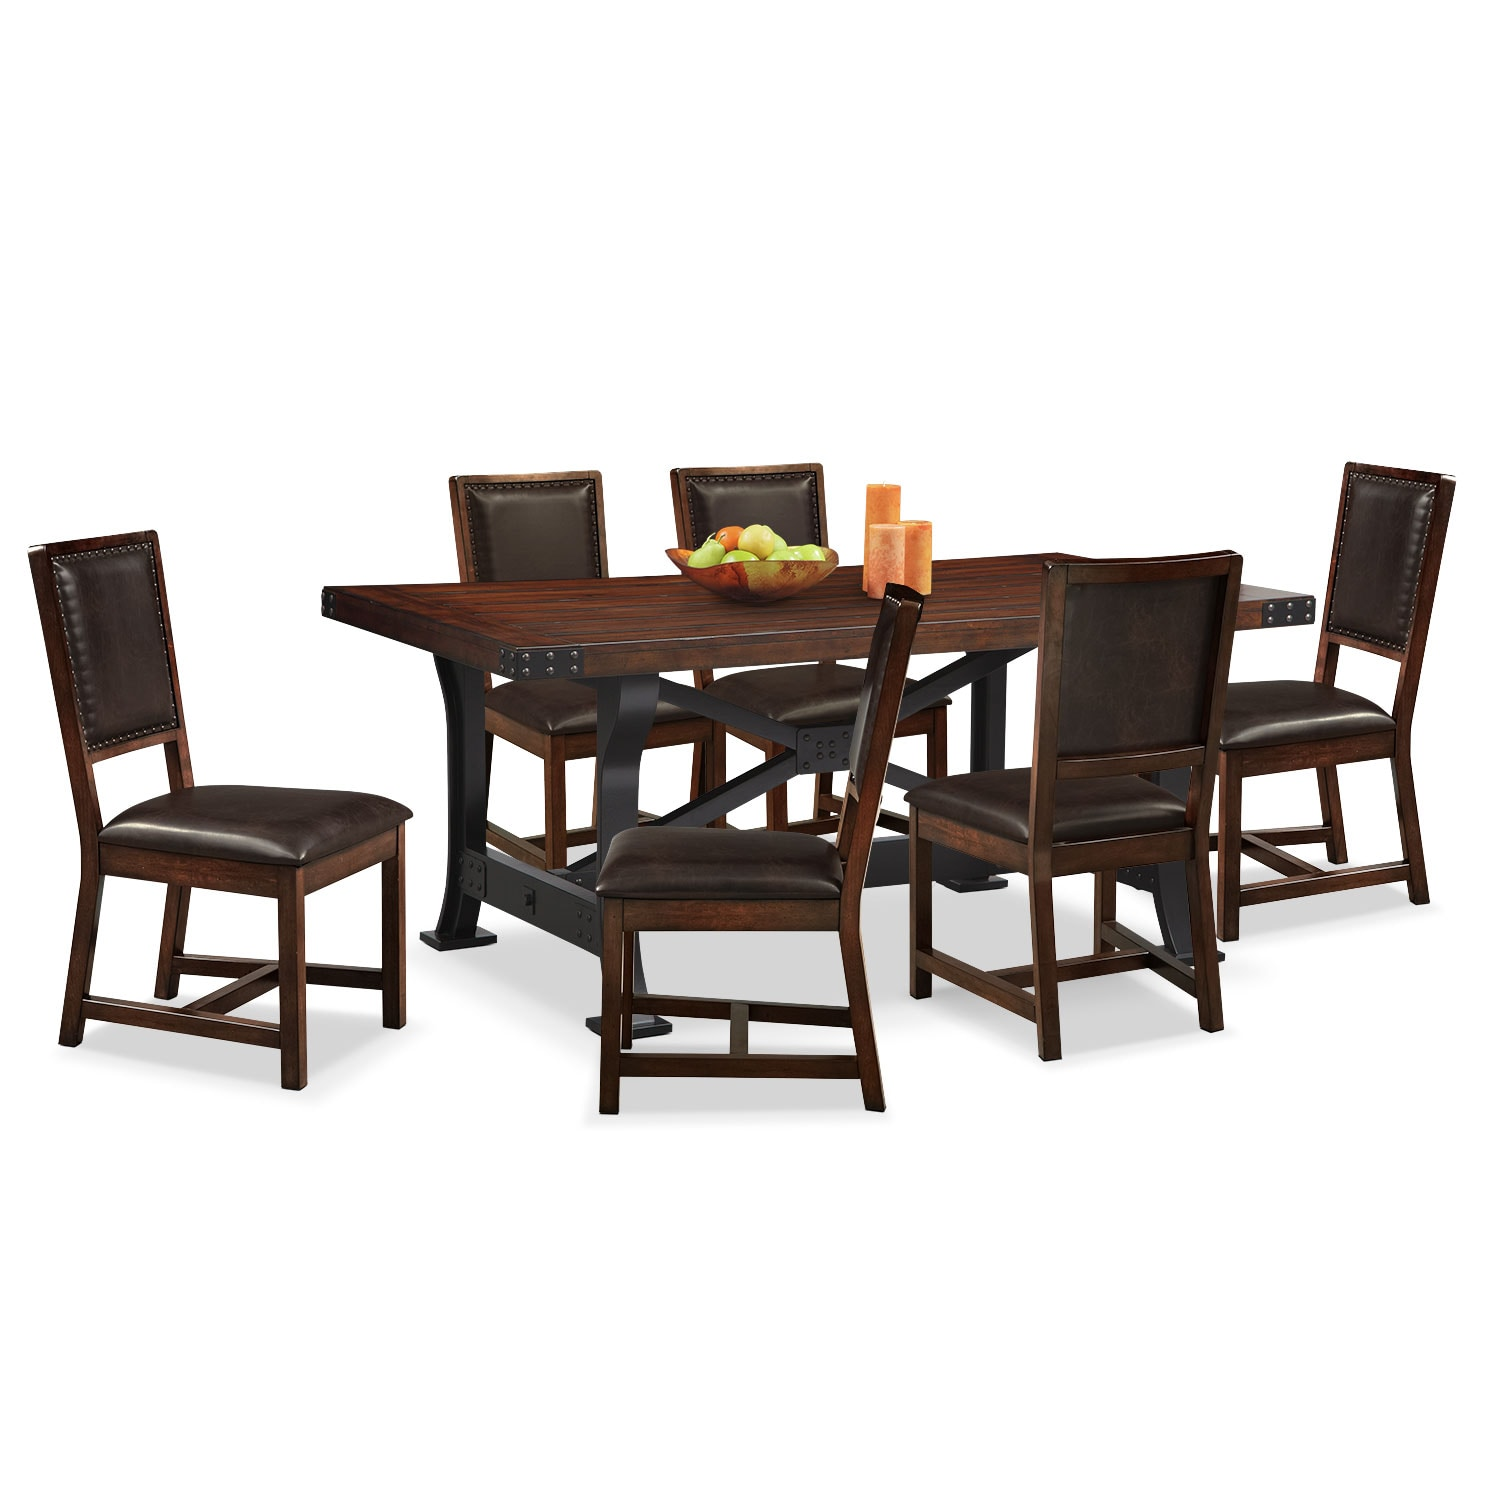 Value City Chairs Newcastle Dining Table And 6 Side Chairs